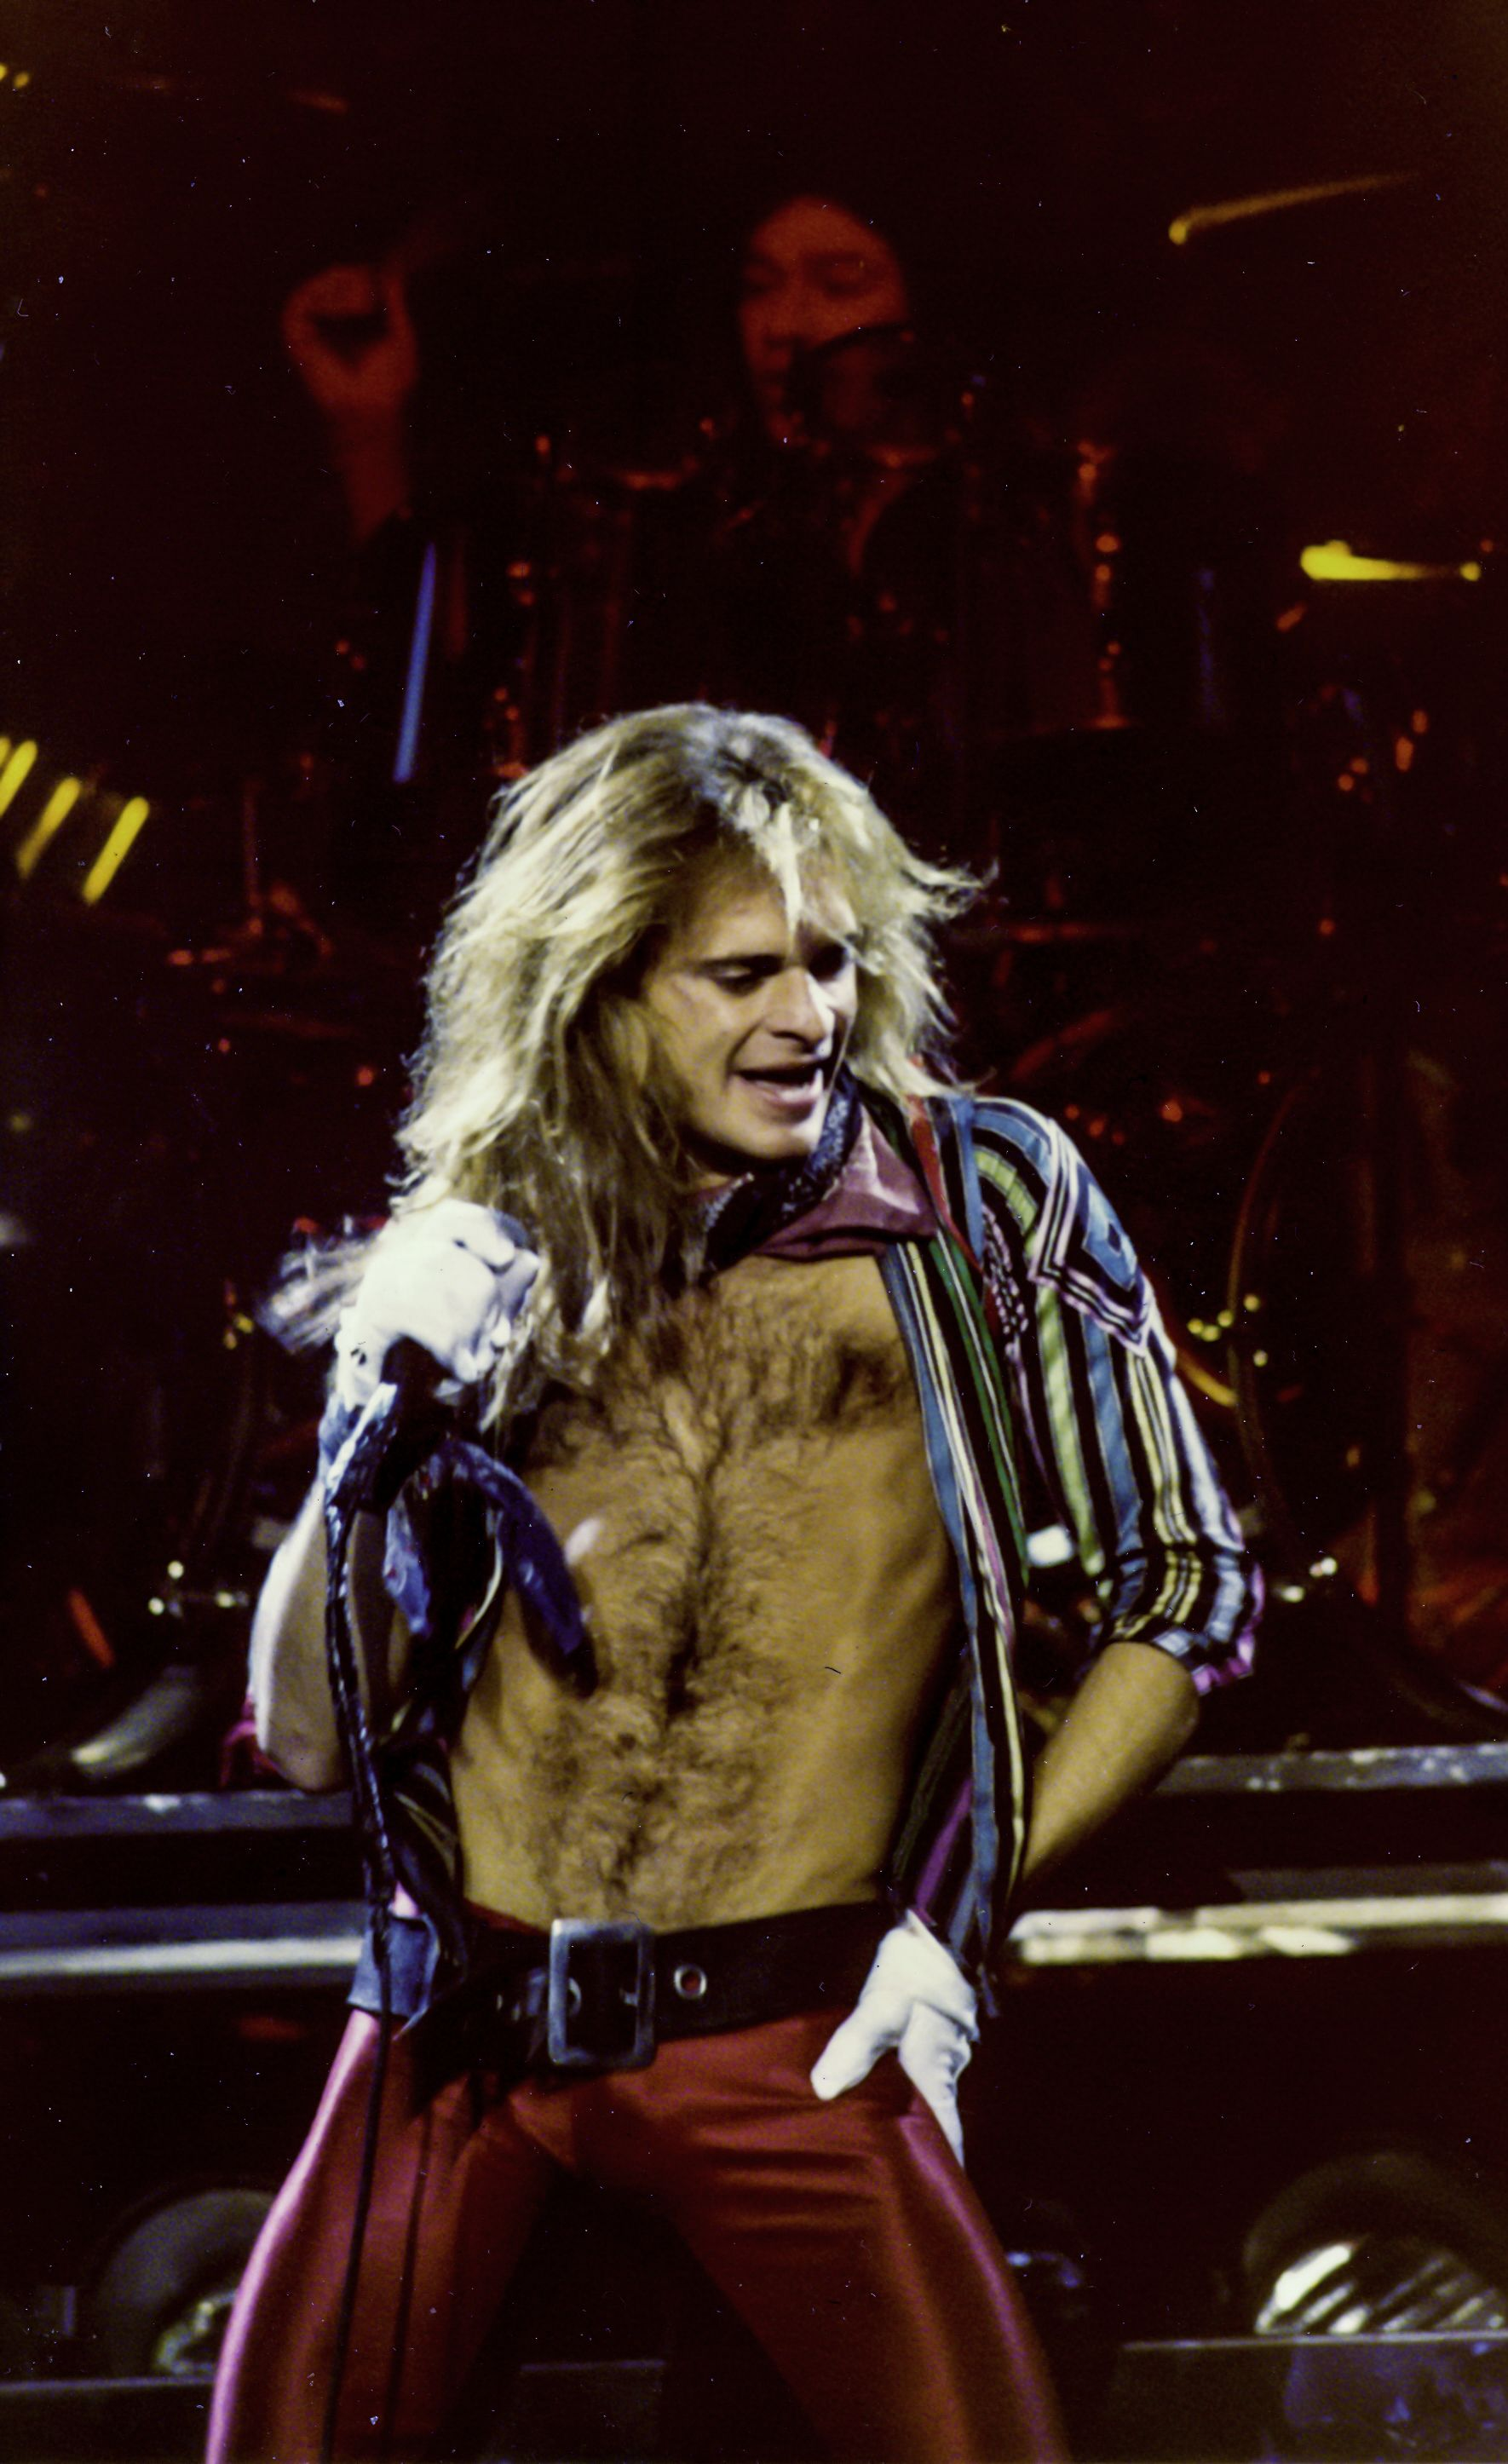 David Lee Roth Van Halen Jacksonville Civic Auditorium First Tour Van Halen David Lee Roth David Lee